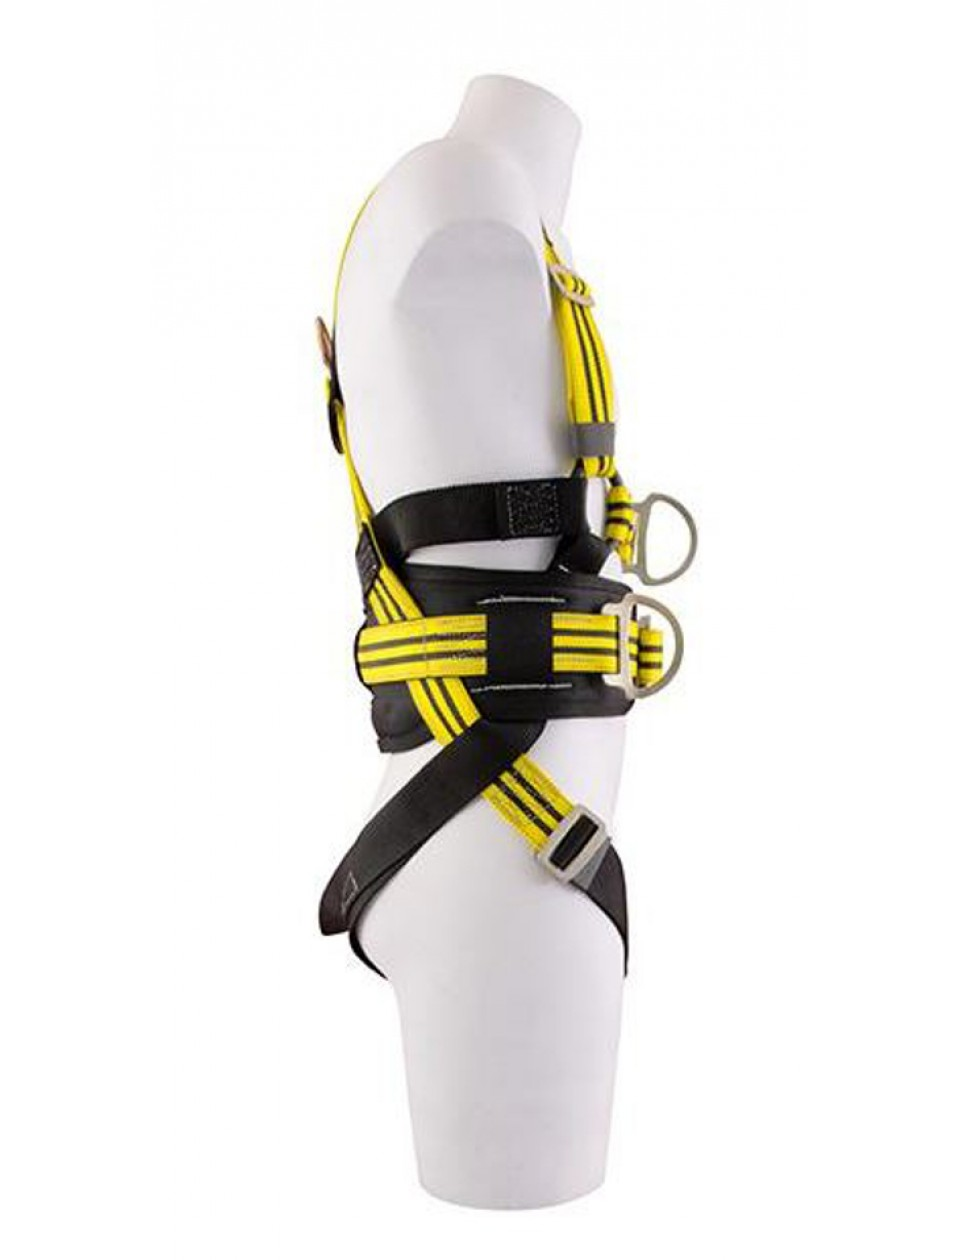 P+P Super MK3 Harness 90049MK3  Personal Protective Equipment